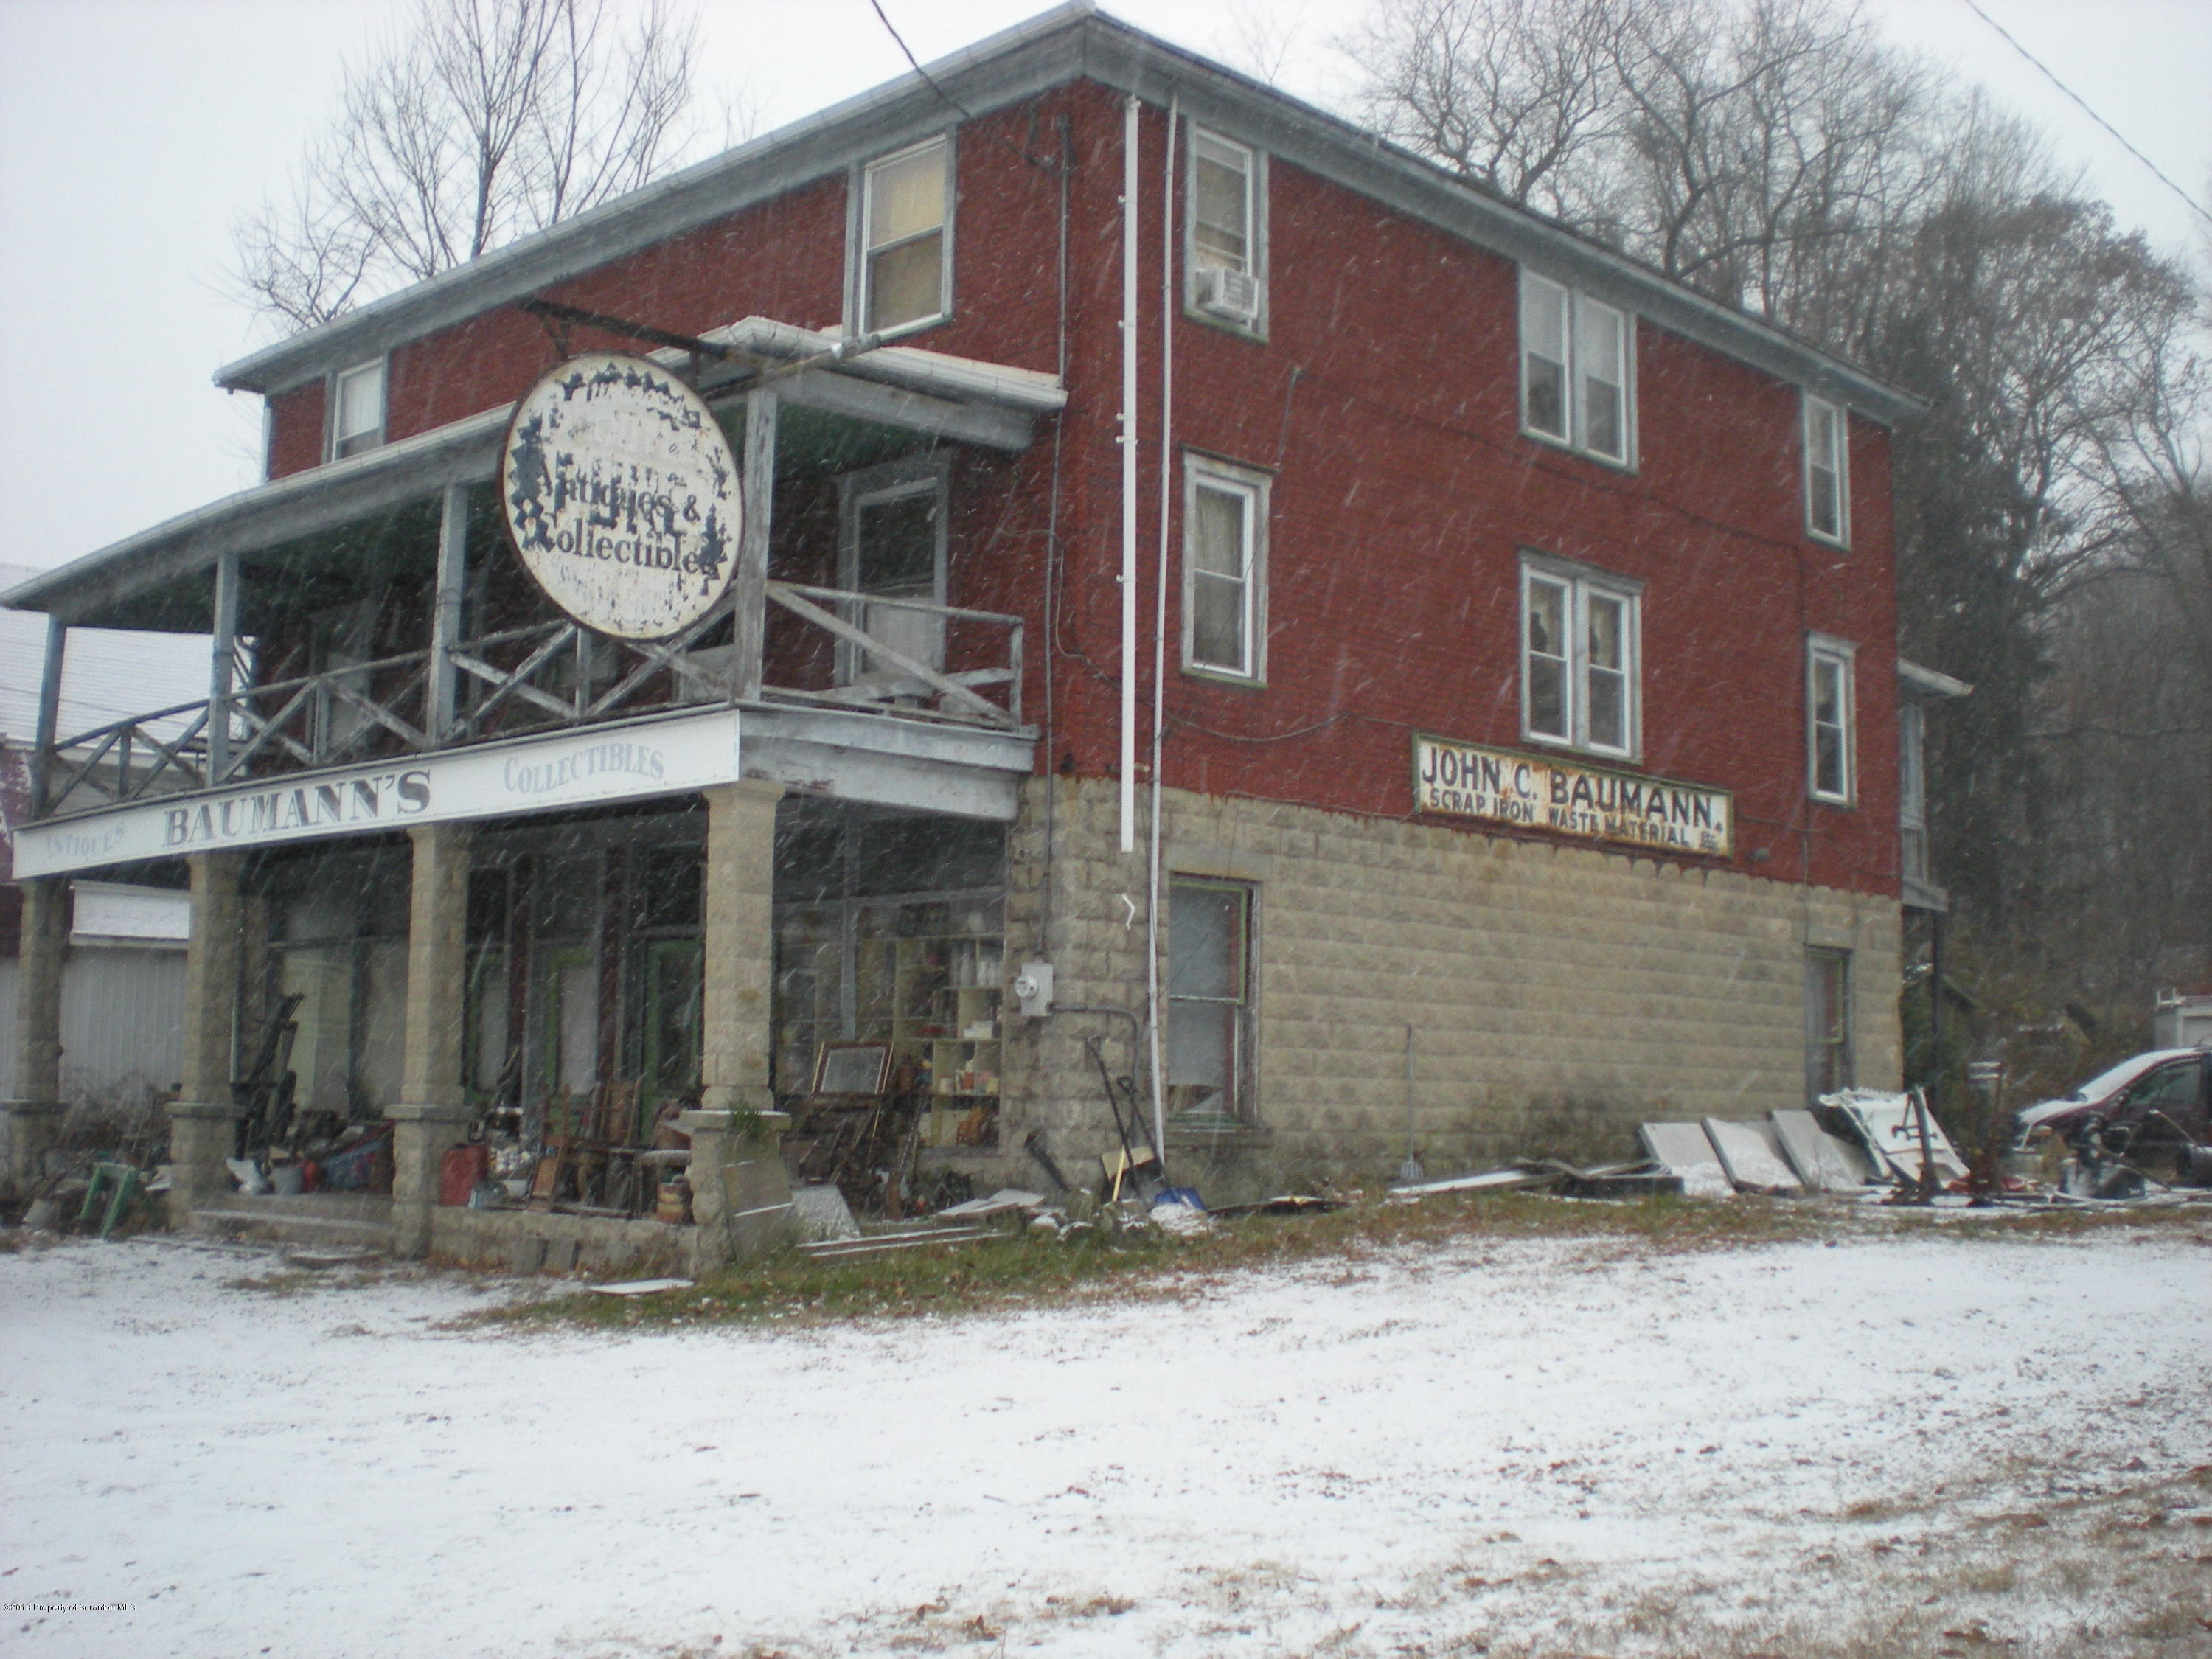 311 MAIN St, Childs, Pennsylvania 18407, ,2 BathroomsBathrooms,Commercial,For Sale,MAIN,18-5430